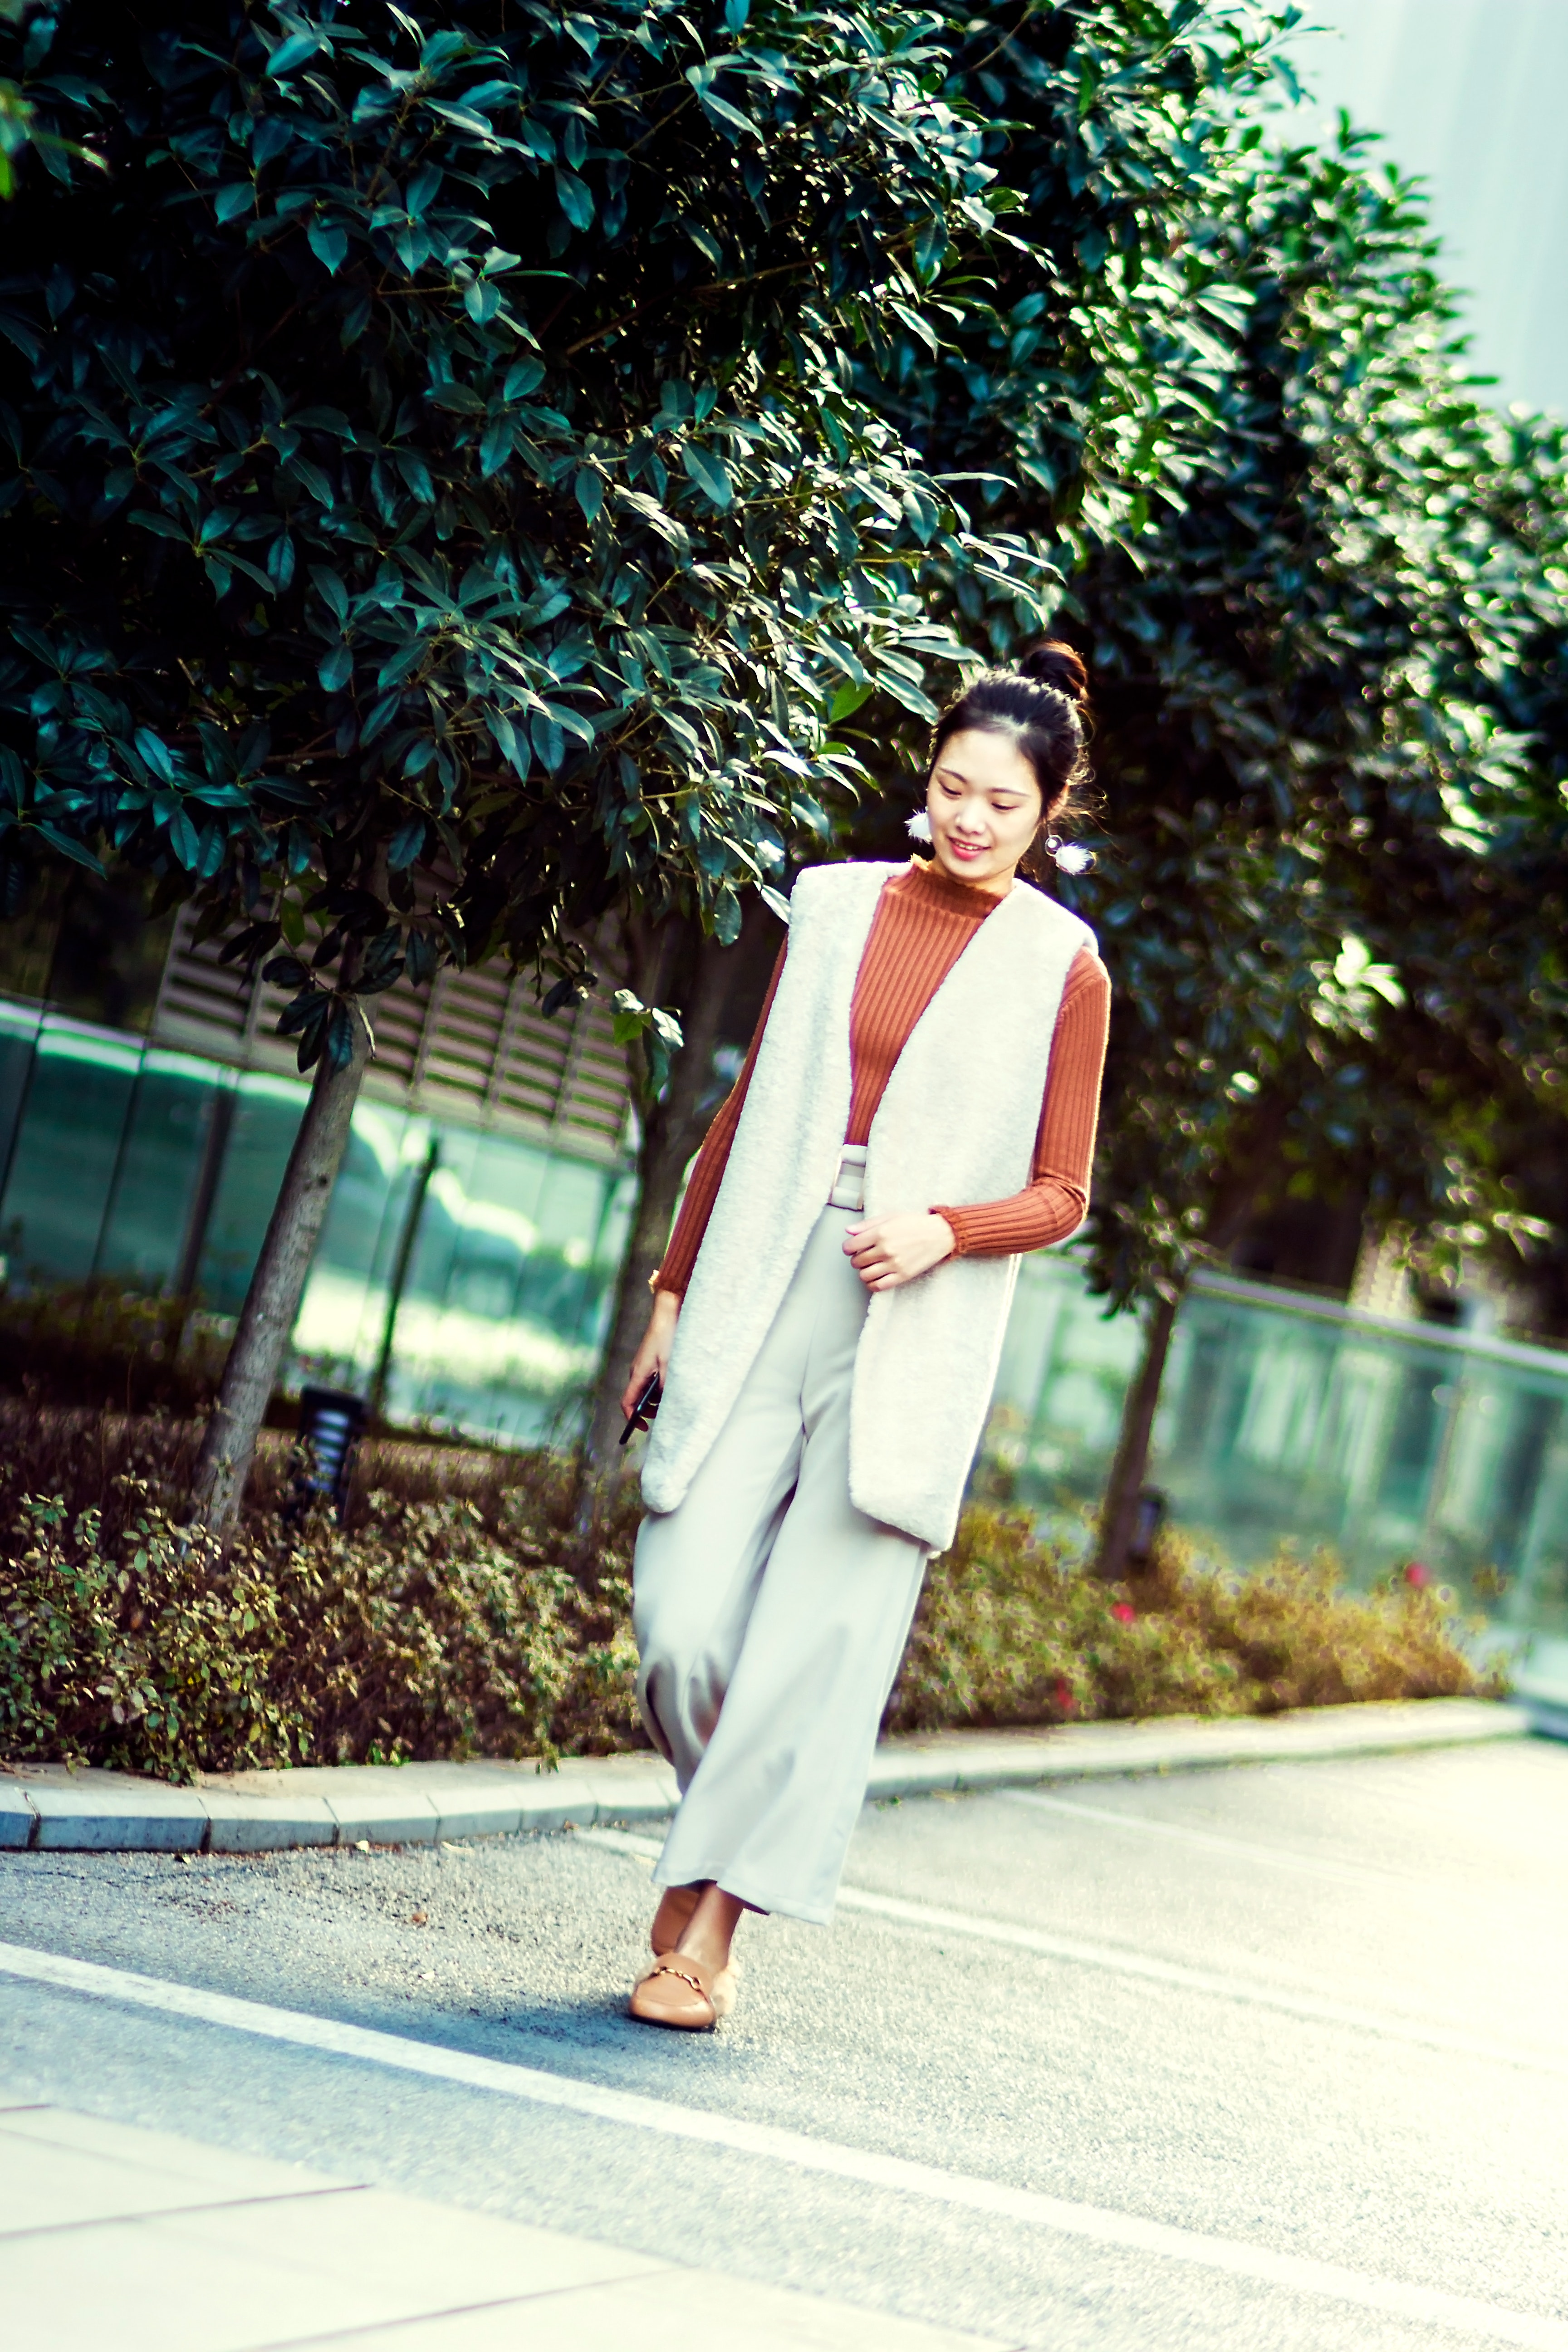 Photography of A Woman Walking, Person, Young, Woman, Wear, HQ Photo